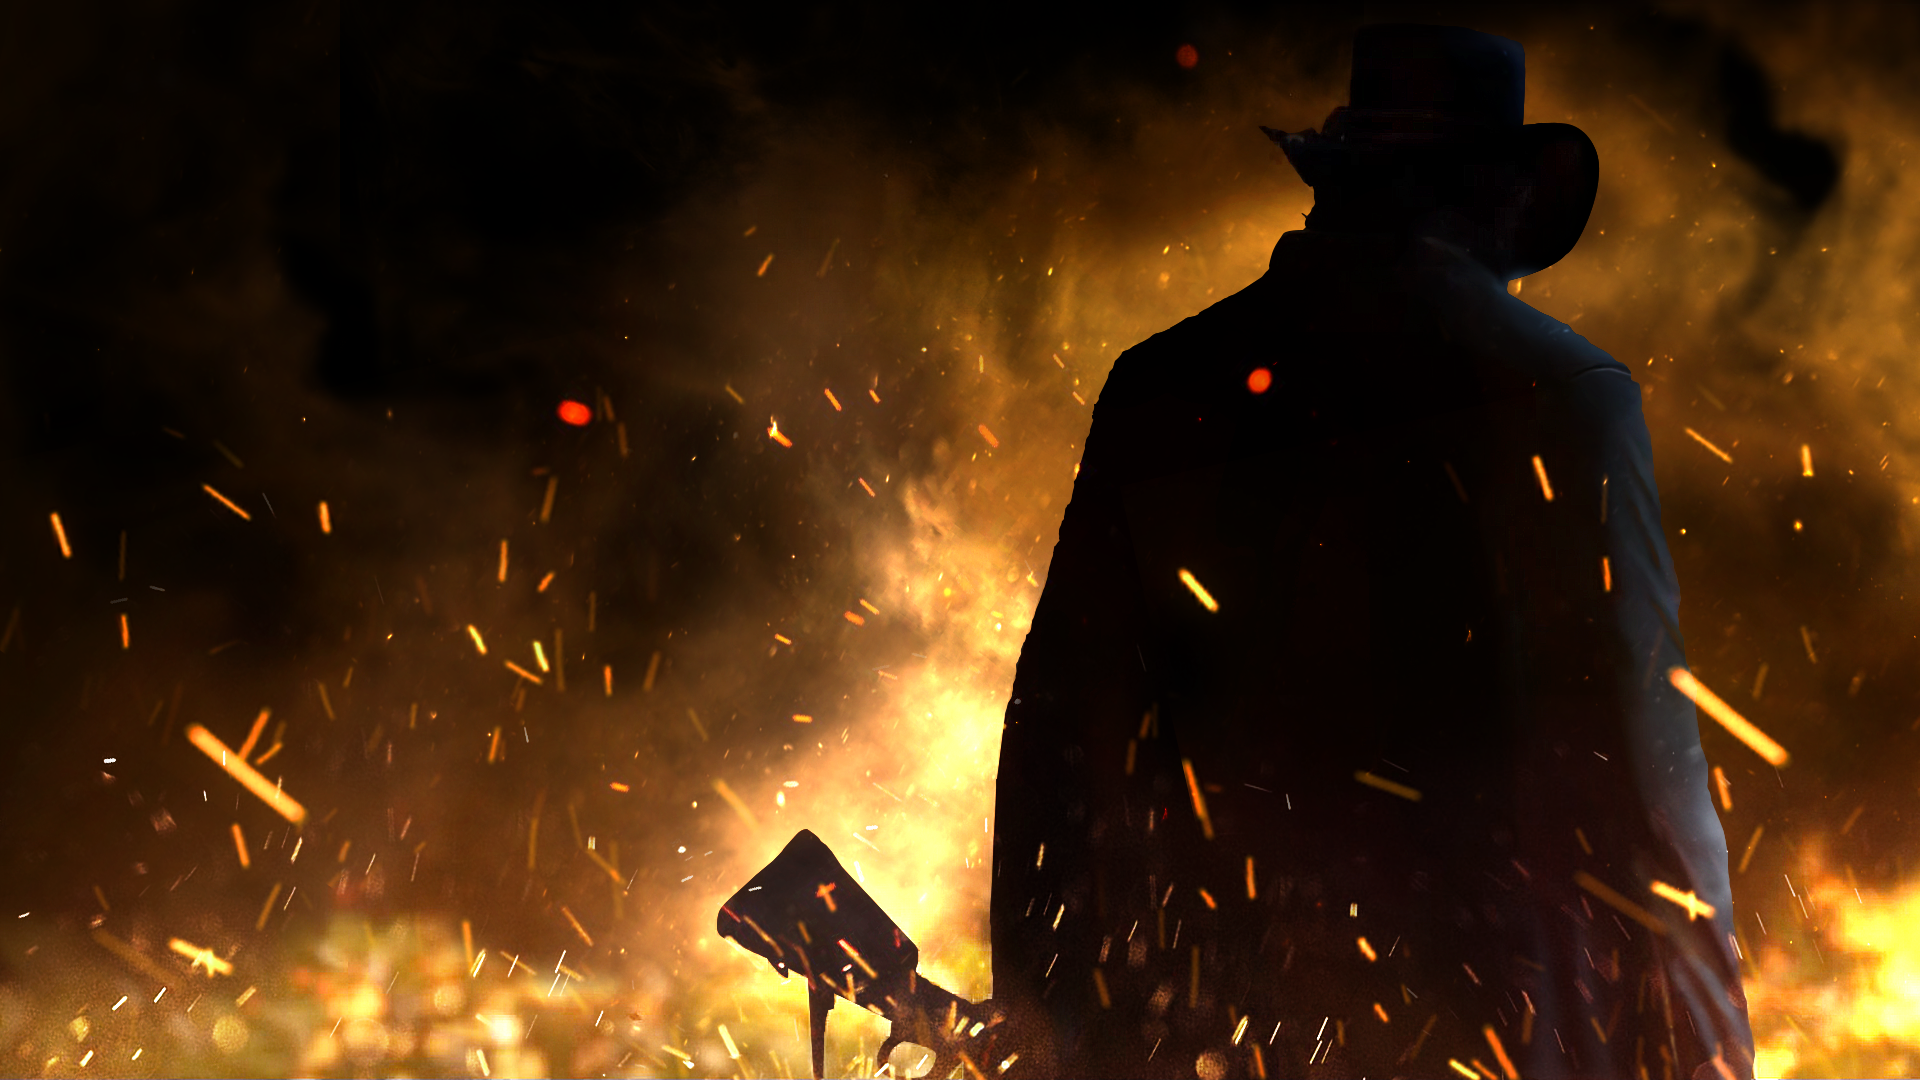 Red Dead Redemption 2 Wallpapers Red Dead Redemption 2 Wallpaper